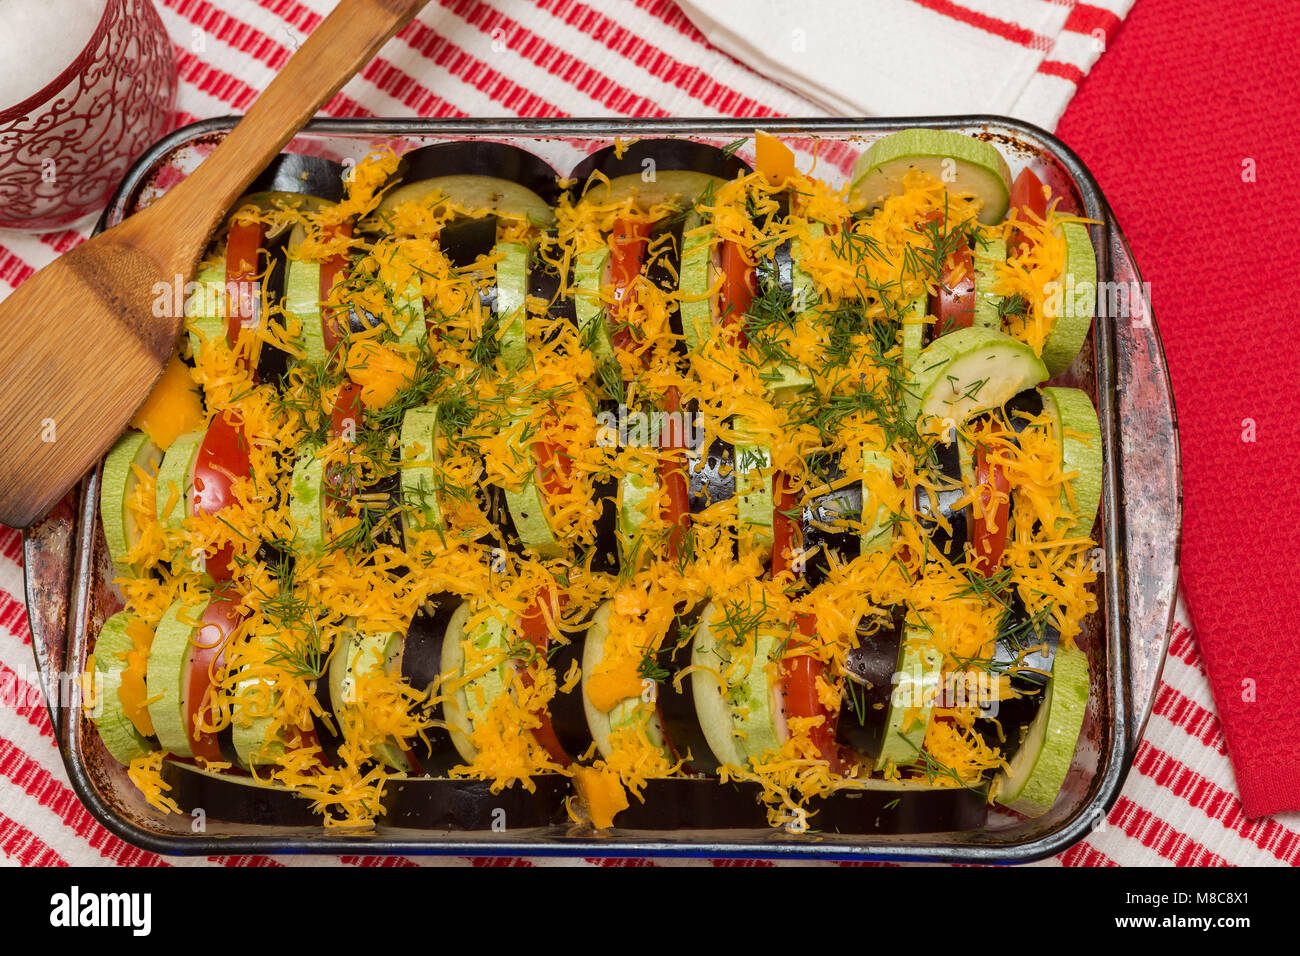 Vegetarian ratatouille made from beautiful, colored vegetables with the addition of Cheder cheese ready for baking. - Stock Image